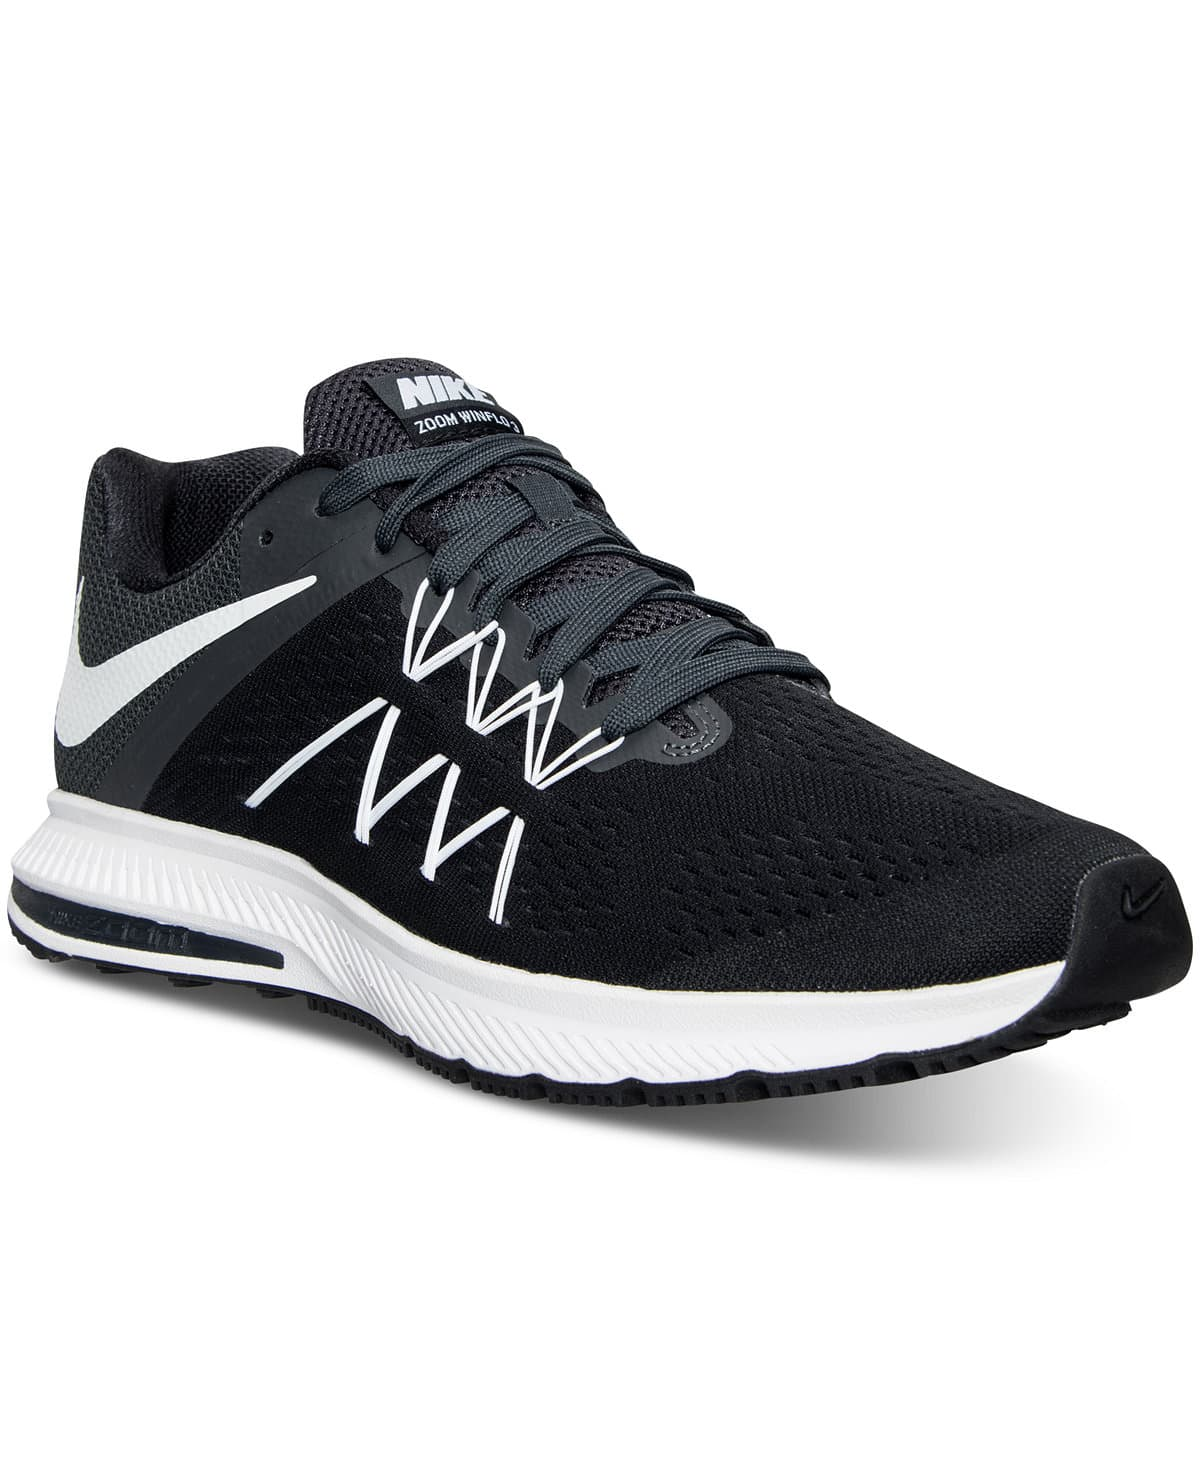 *working again* Nike Men's Air Zoom Winflo 3 Running Sneakers $30, adidas Men's AlphaBounce Running Sneakers $34, Nike Men's Air Mavin Low II Basketball Sneakers $30 + FS on $49+